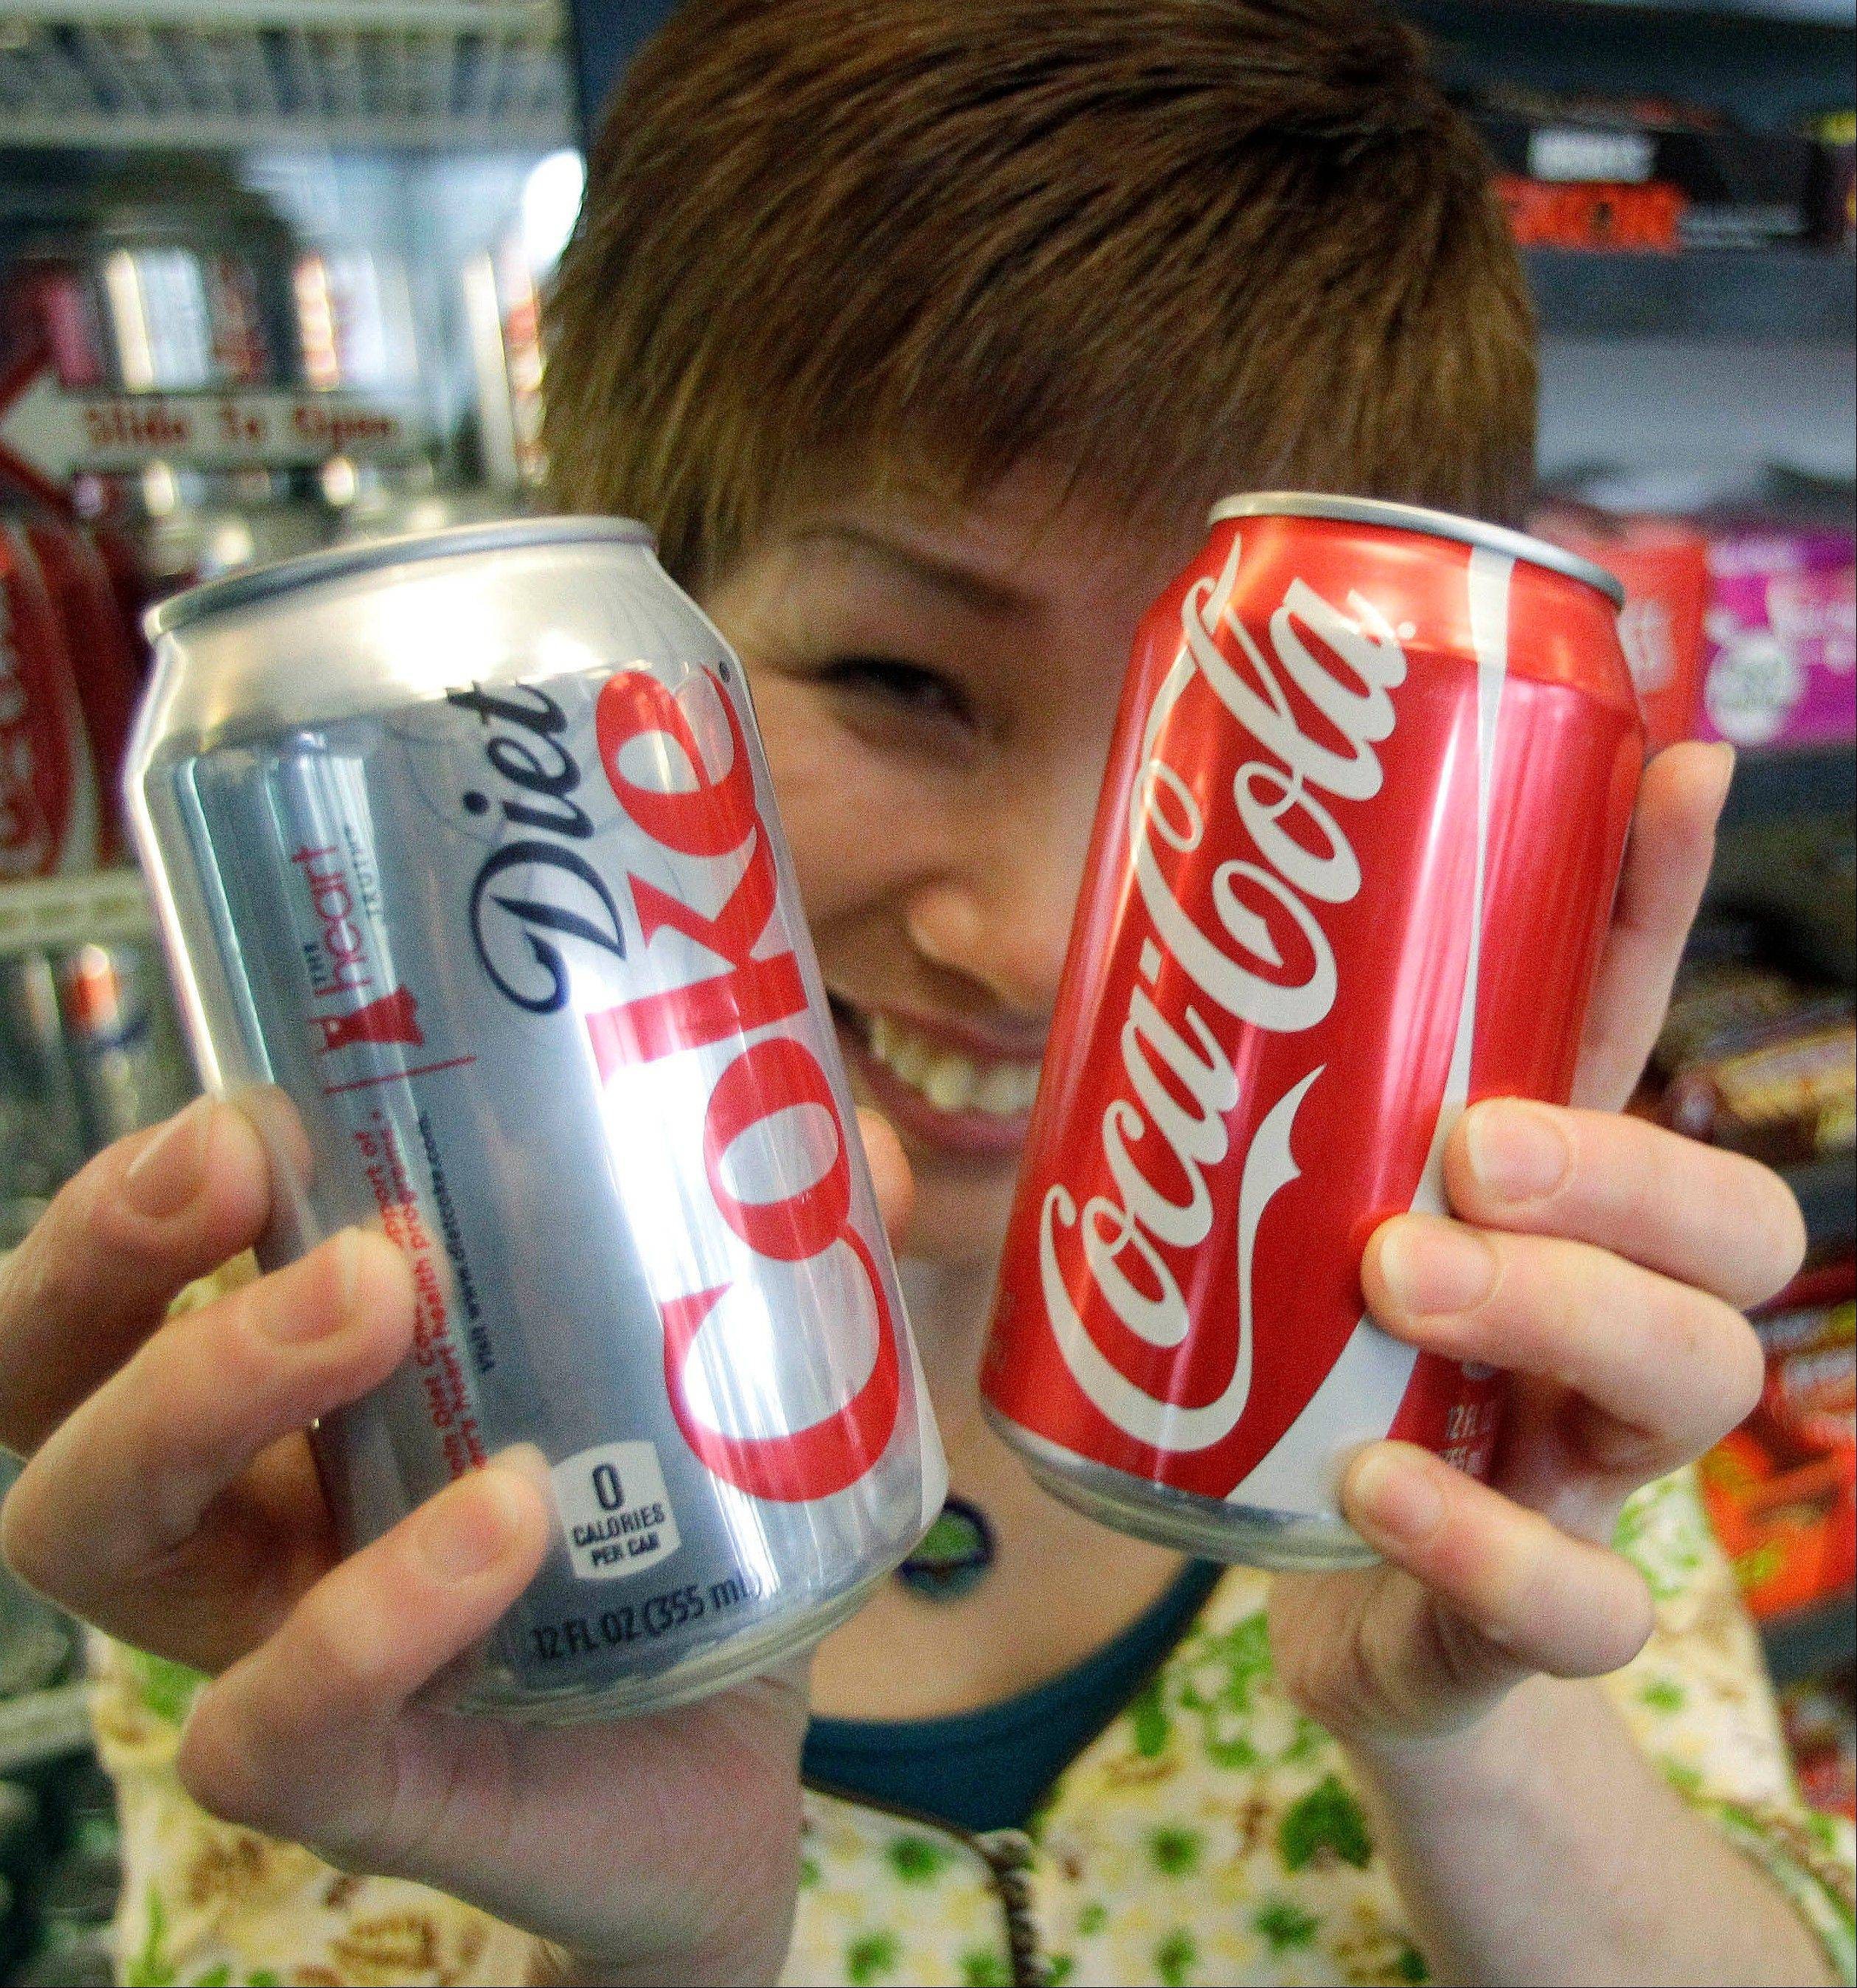 Coca-Cola plans to run its first ad defending the safety of artificial sweeteners on Wednesday, a move that comes as the company looks to stem declining sales of diet soda. Diet Coke contains aspartame.